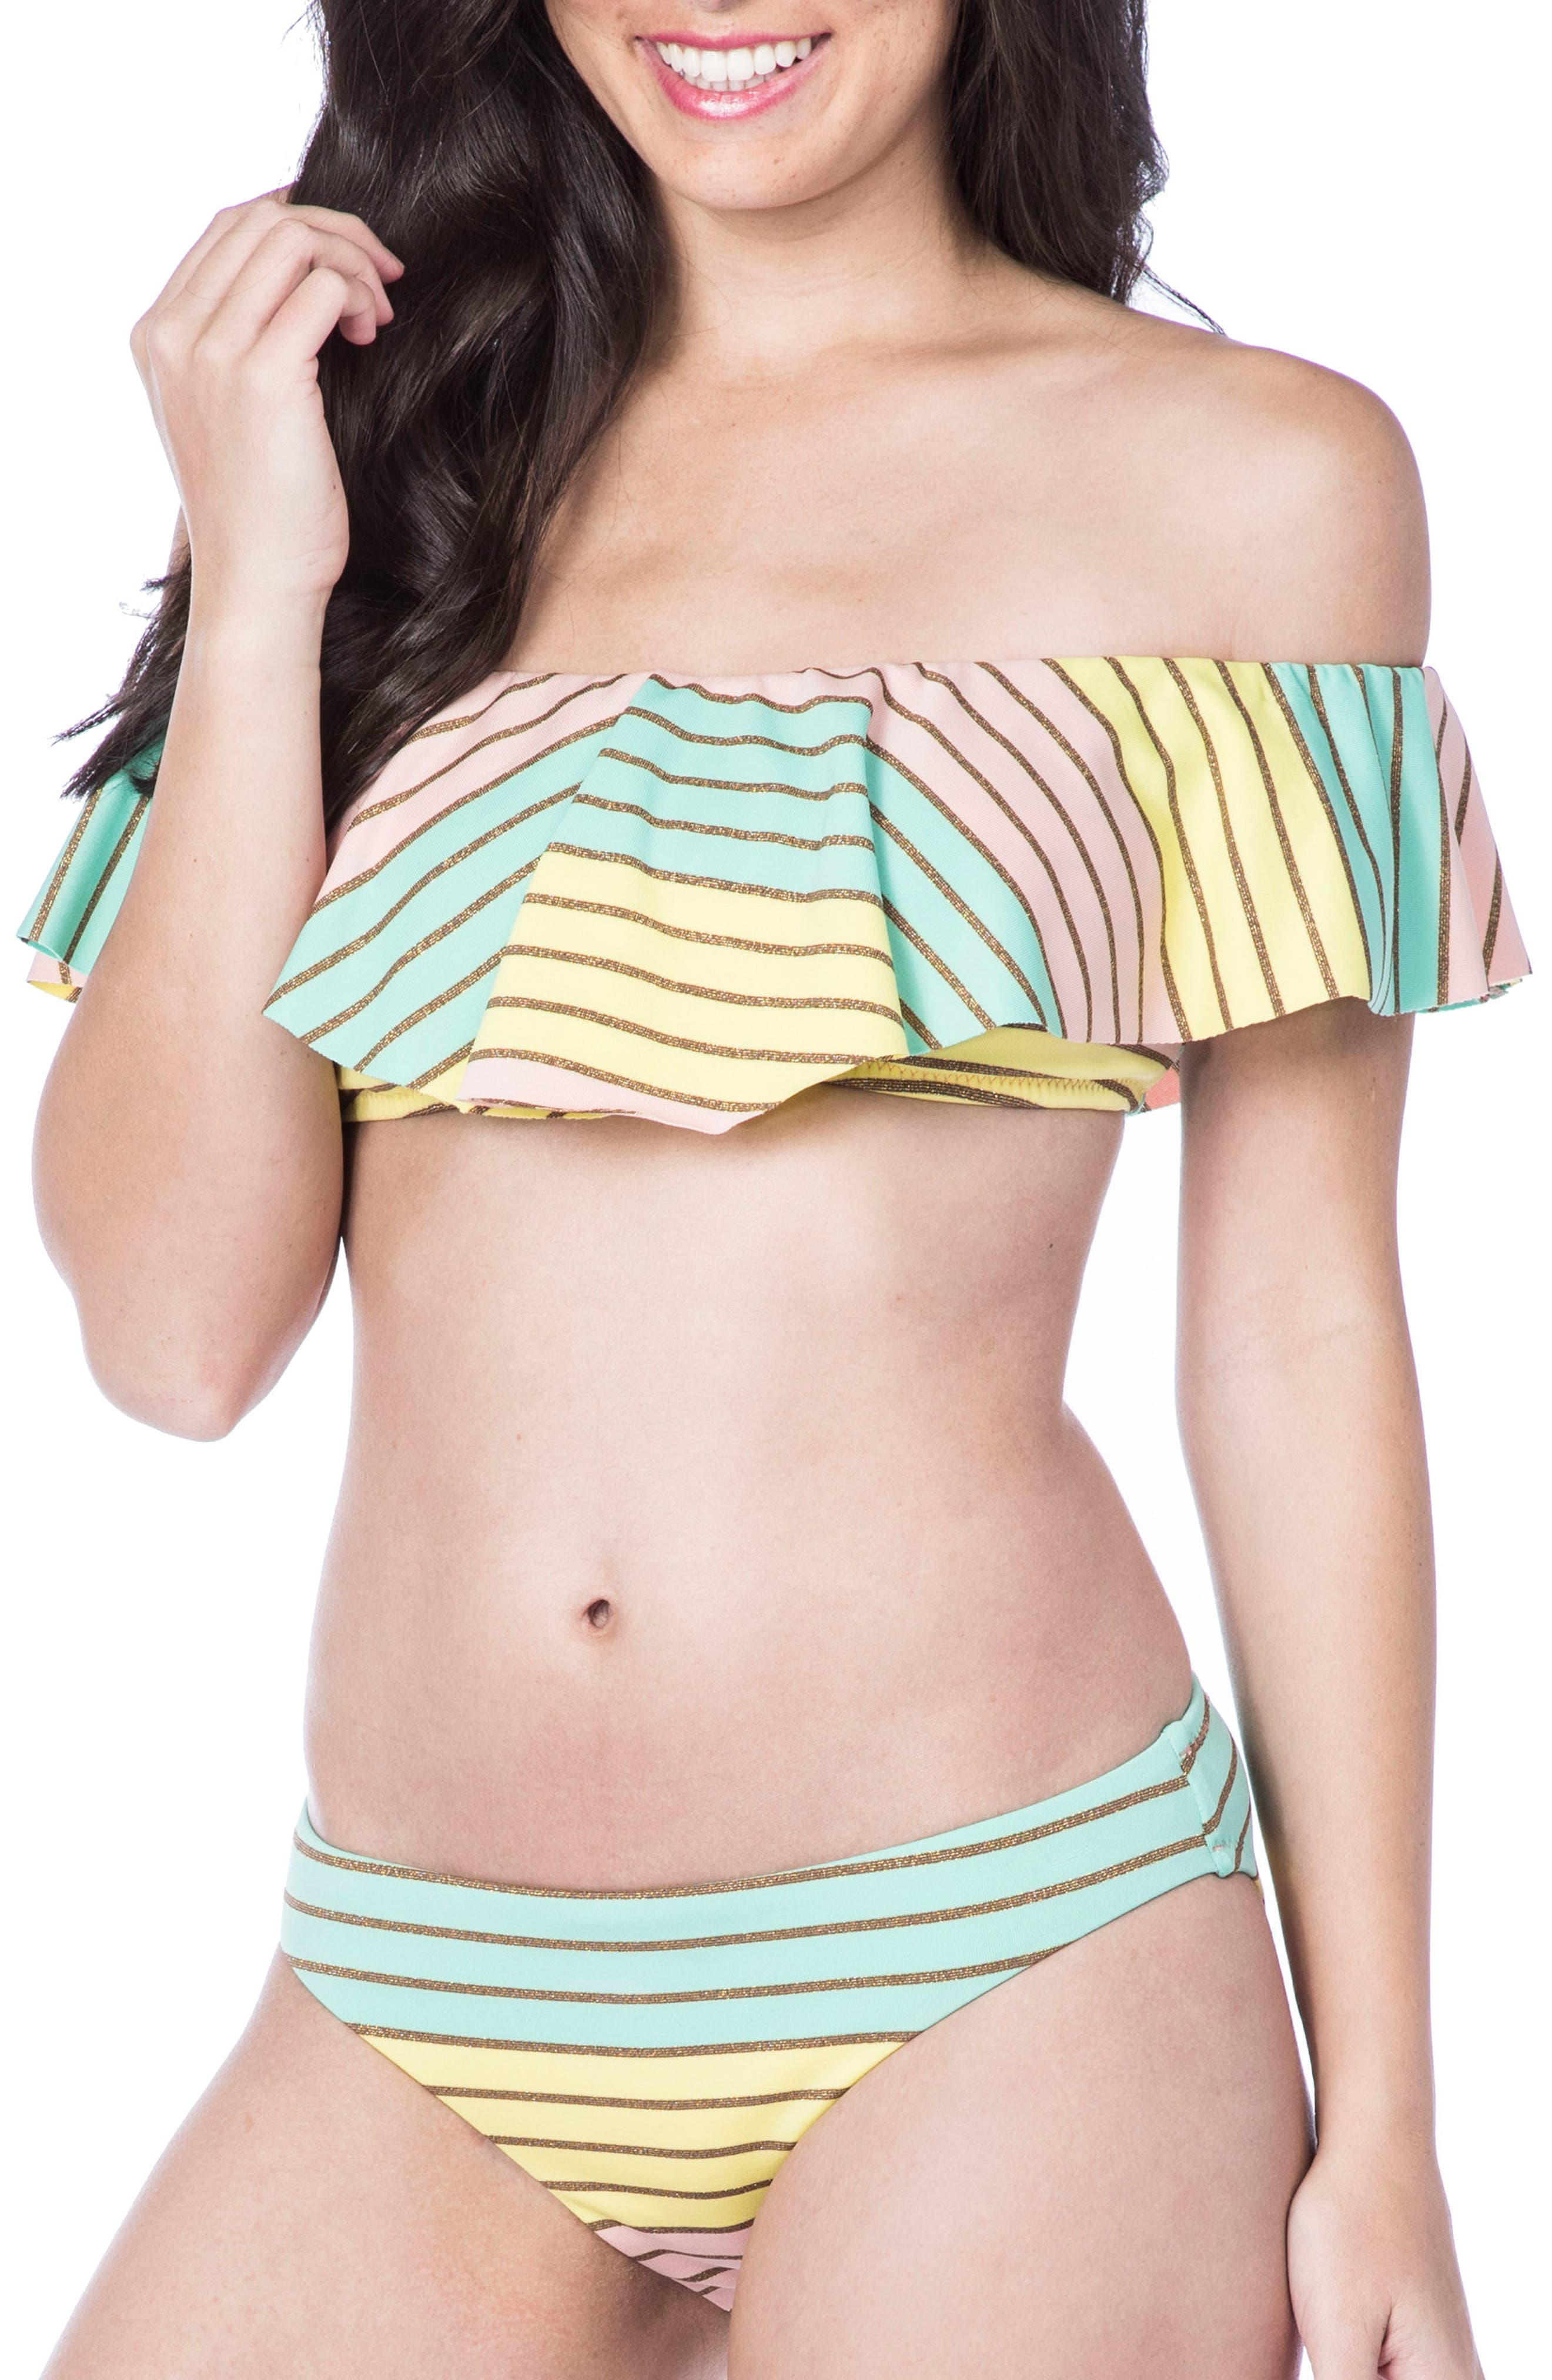 Metallic Stripe Ruffle Bikini Top,                         Main,                         color, Multi-Colored